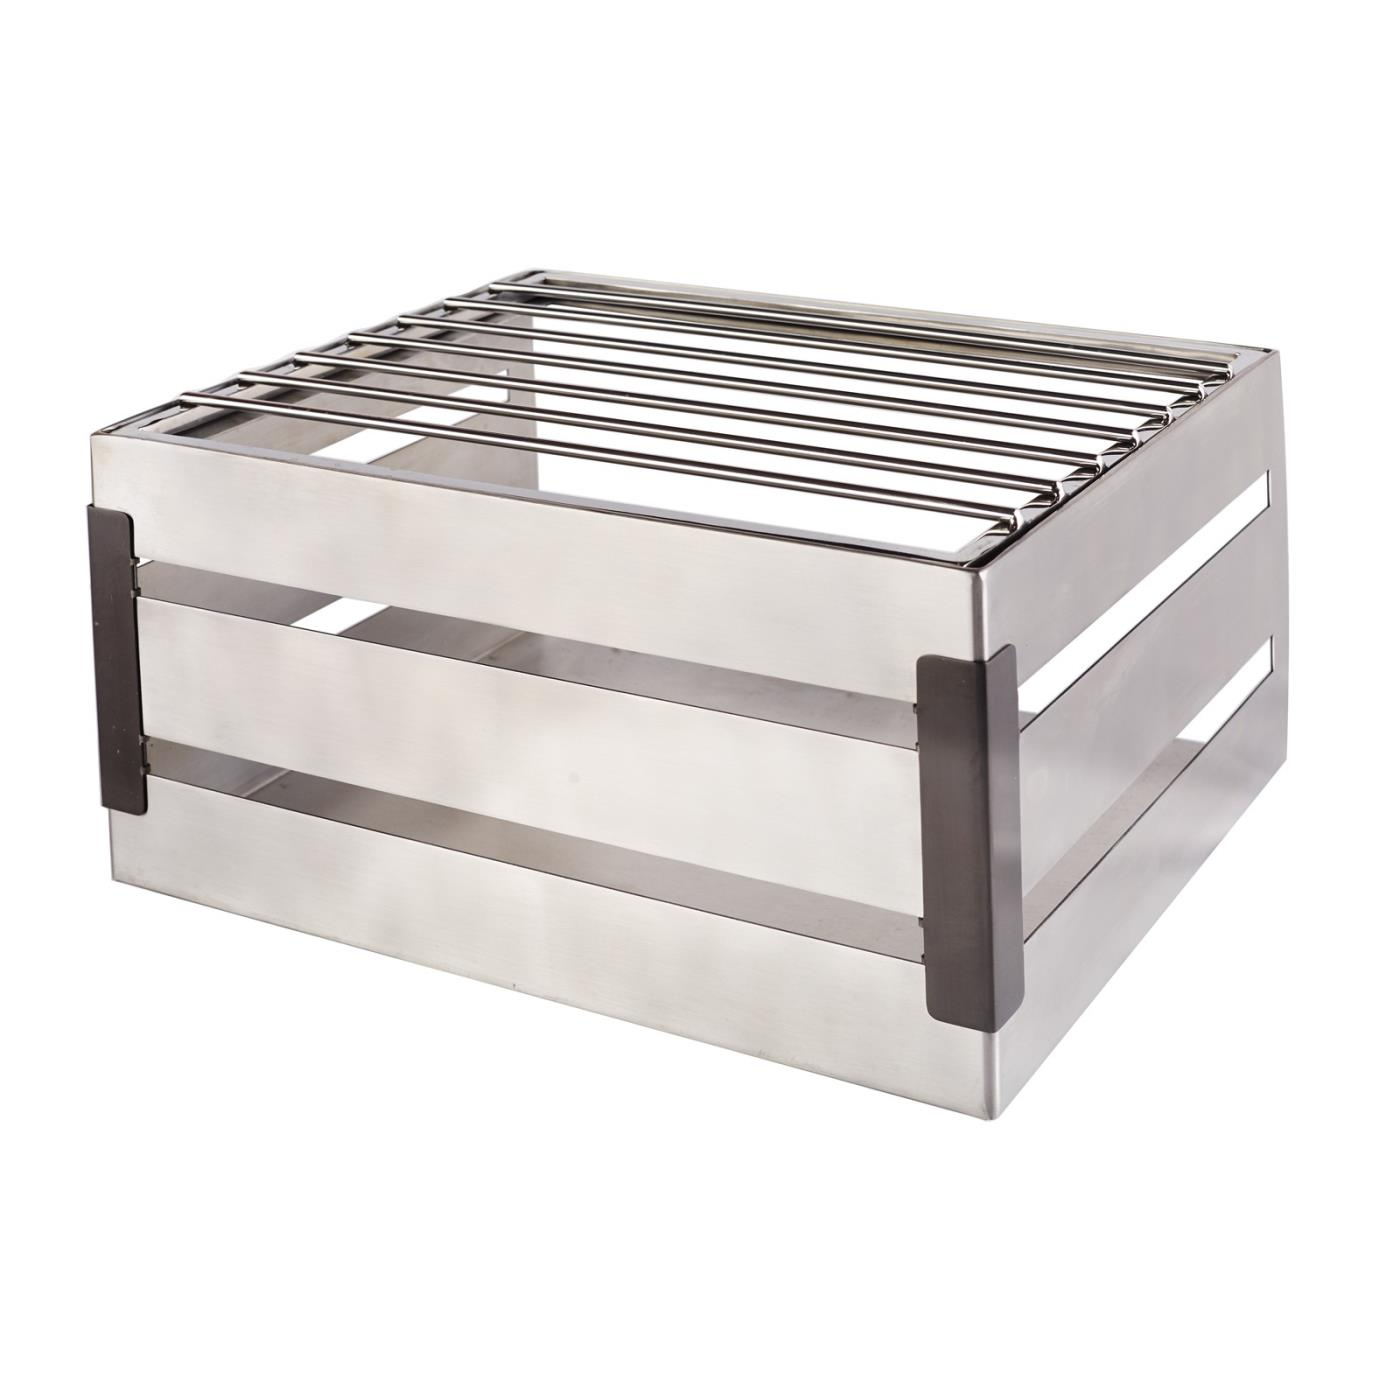 LACS Grill Top for Full Base